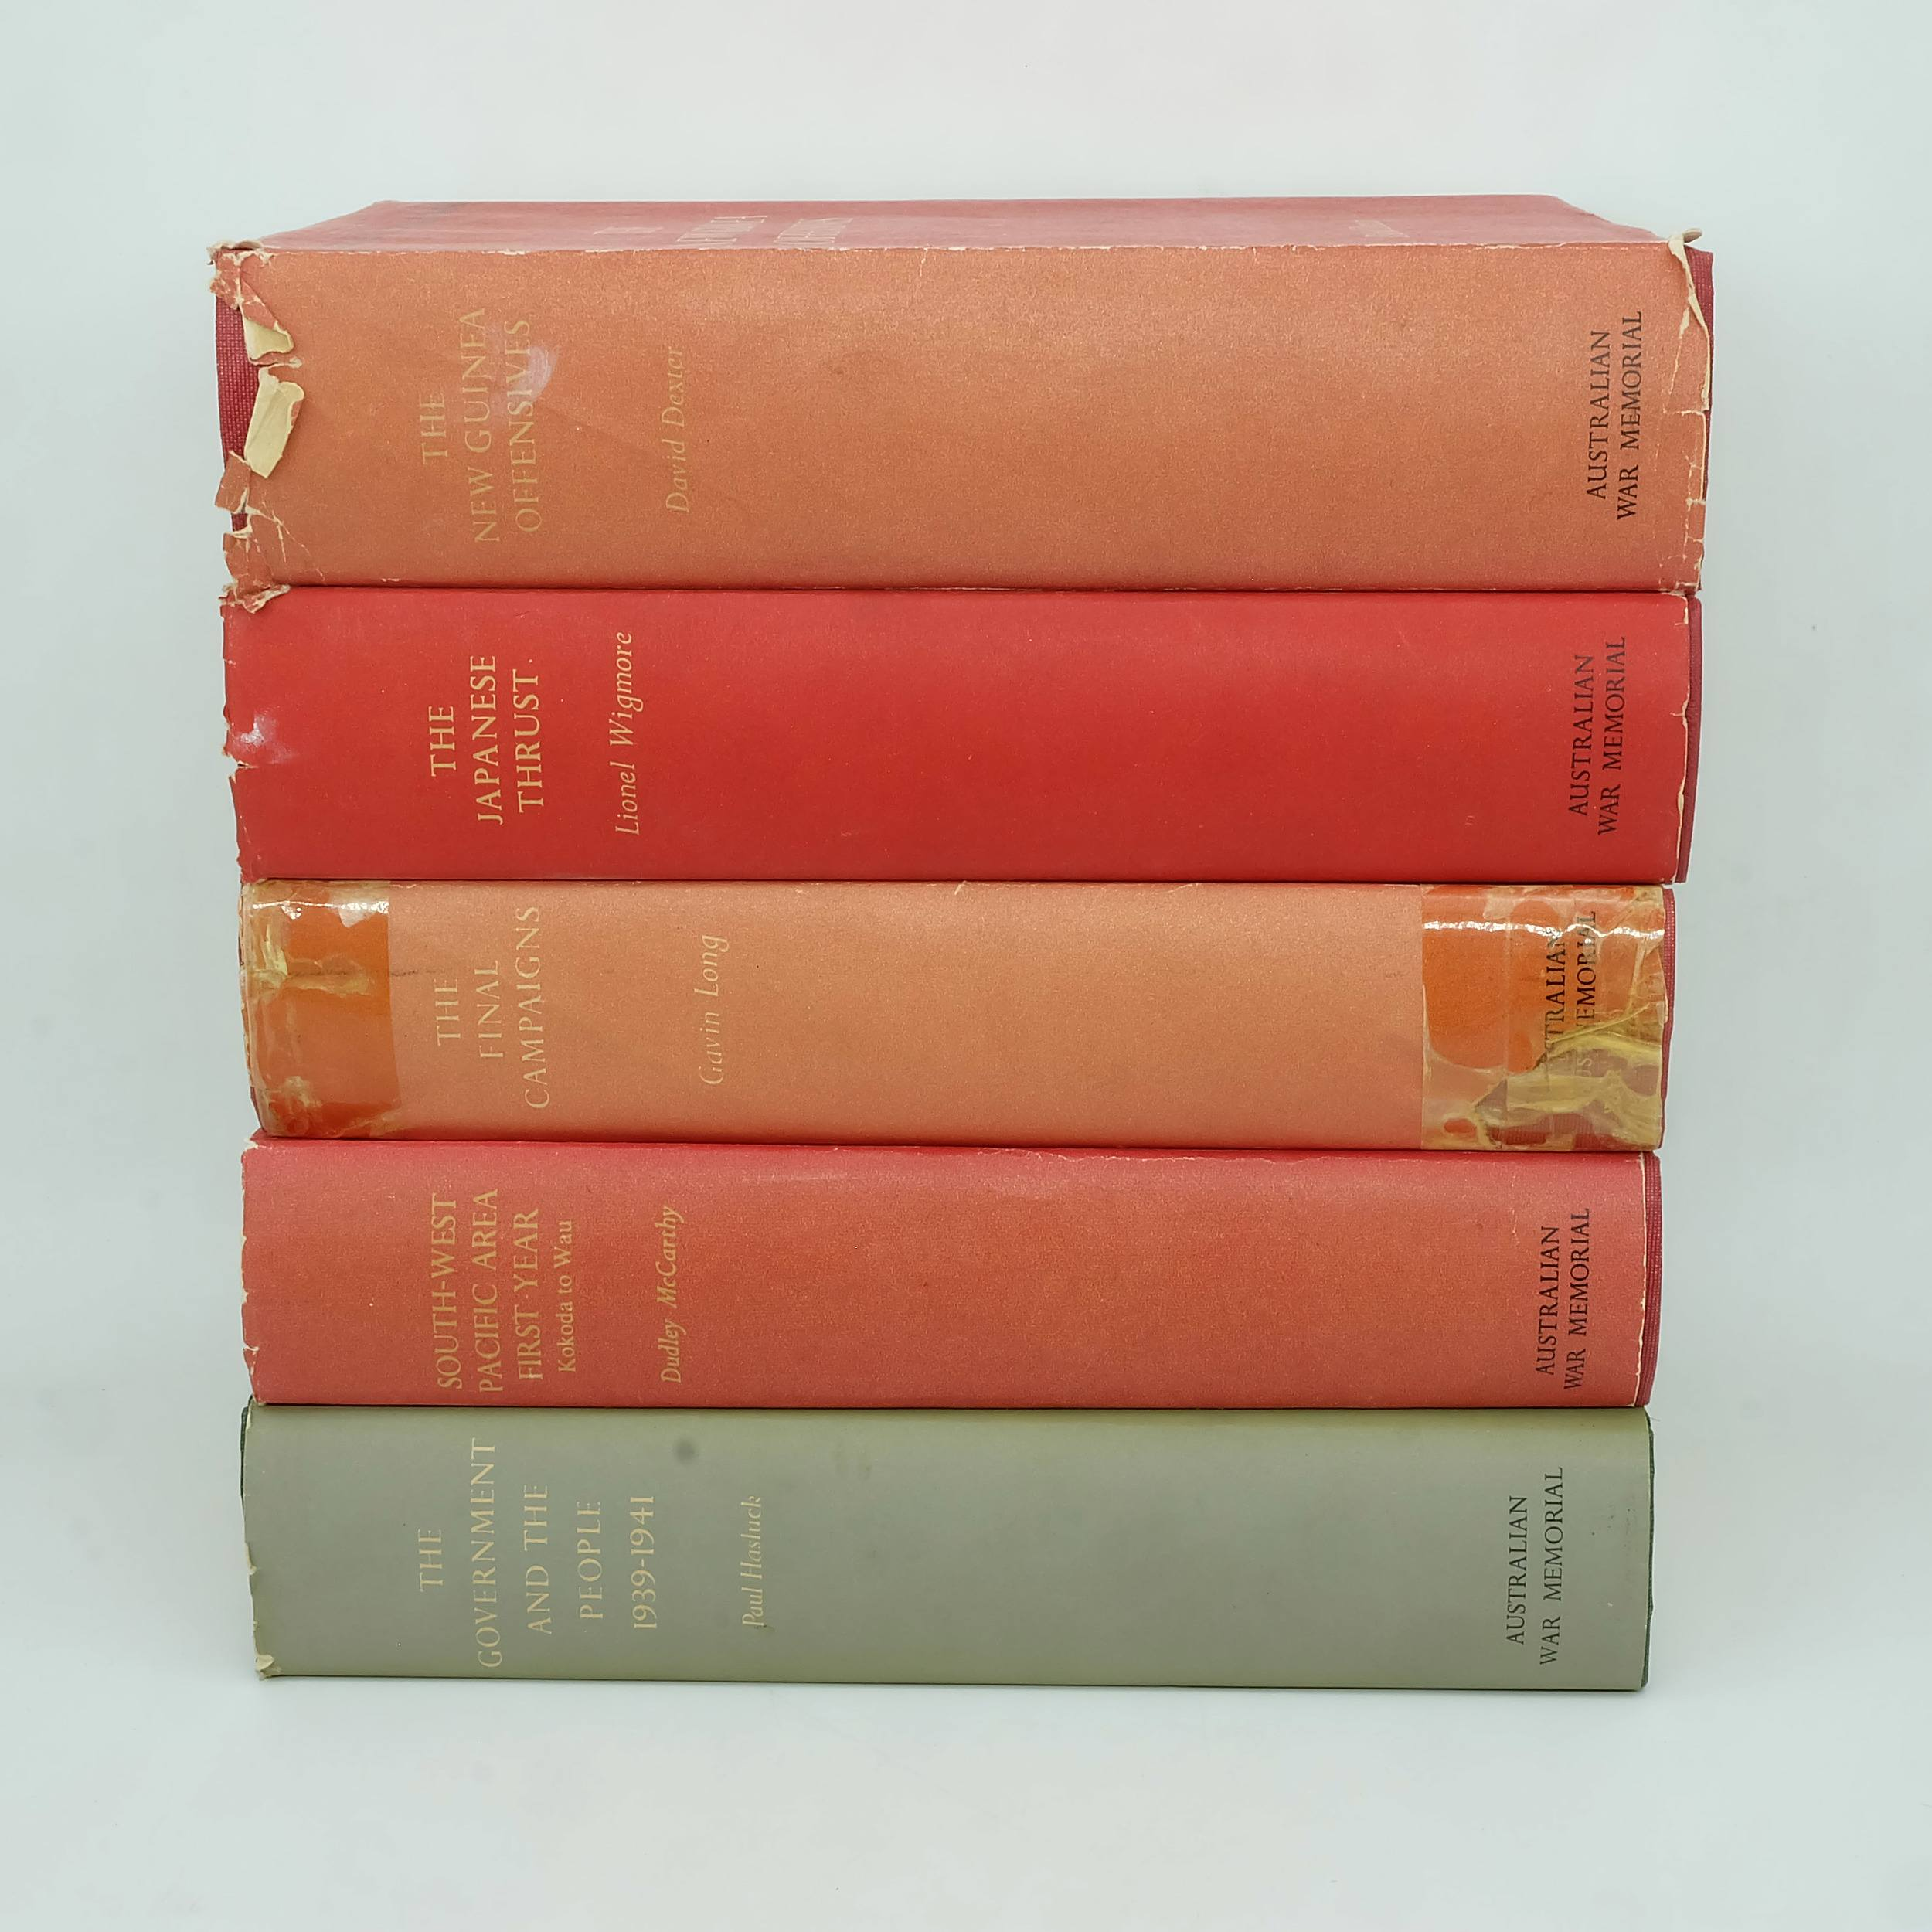 'Five Volumes of Australia in the War 1939-1945, Lionel Wigmore, David Dexter, Paul Hasluck, Dudley McCarthy and Gavin Long'